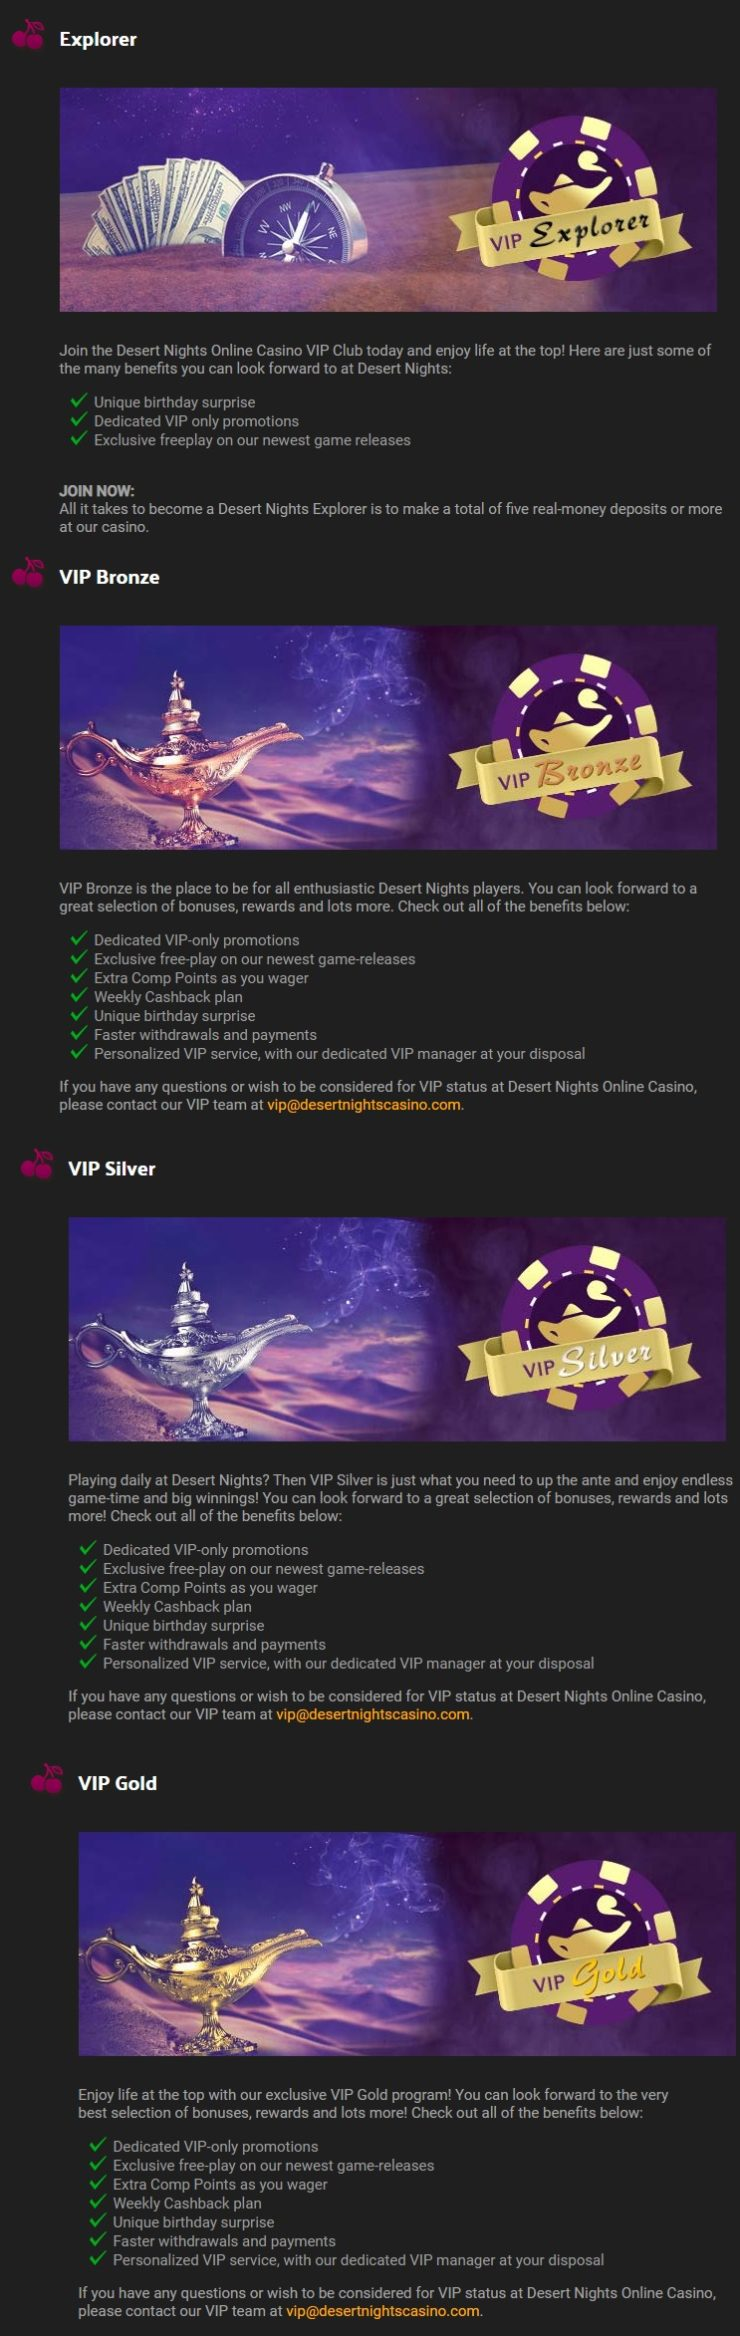 Desert Nights Casino VIP Program